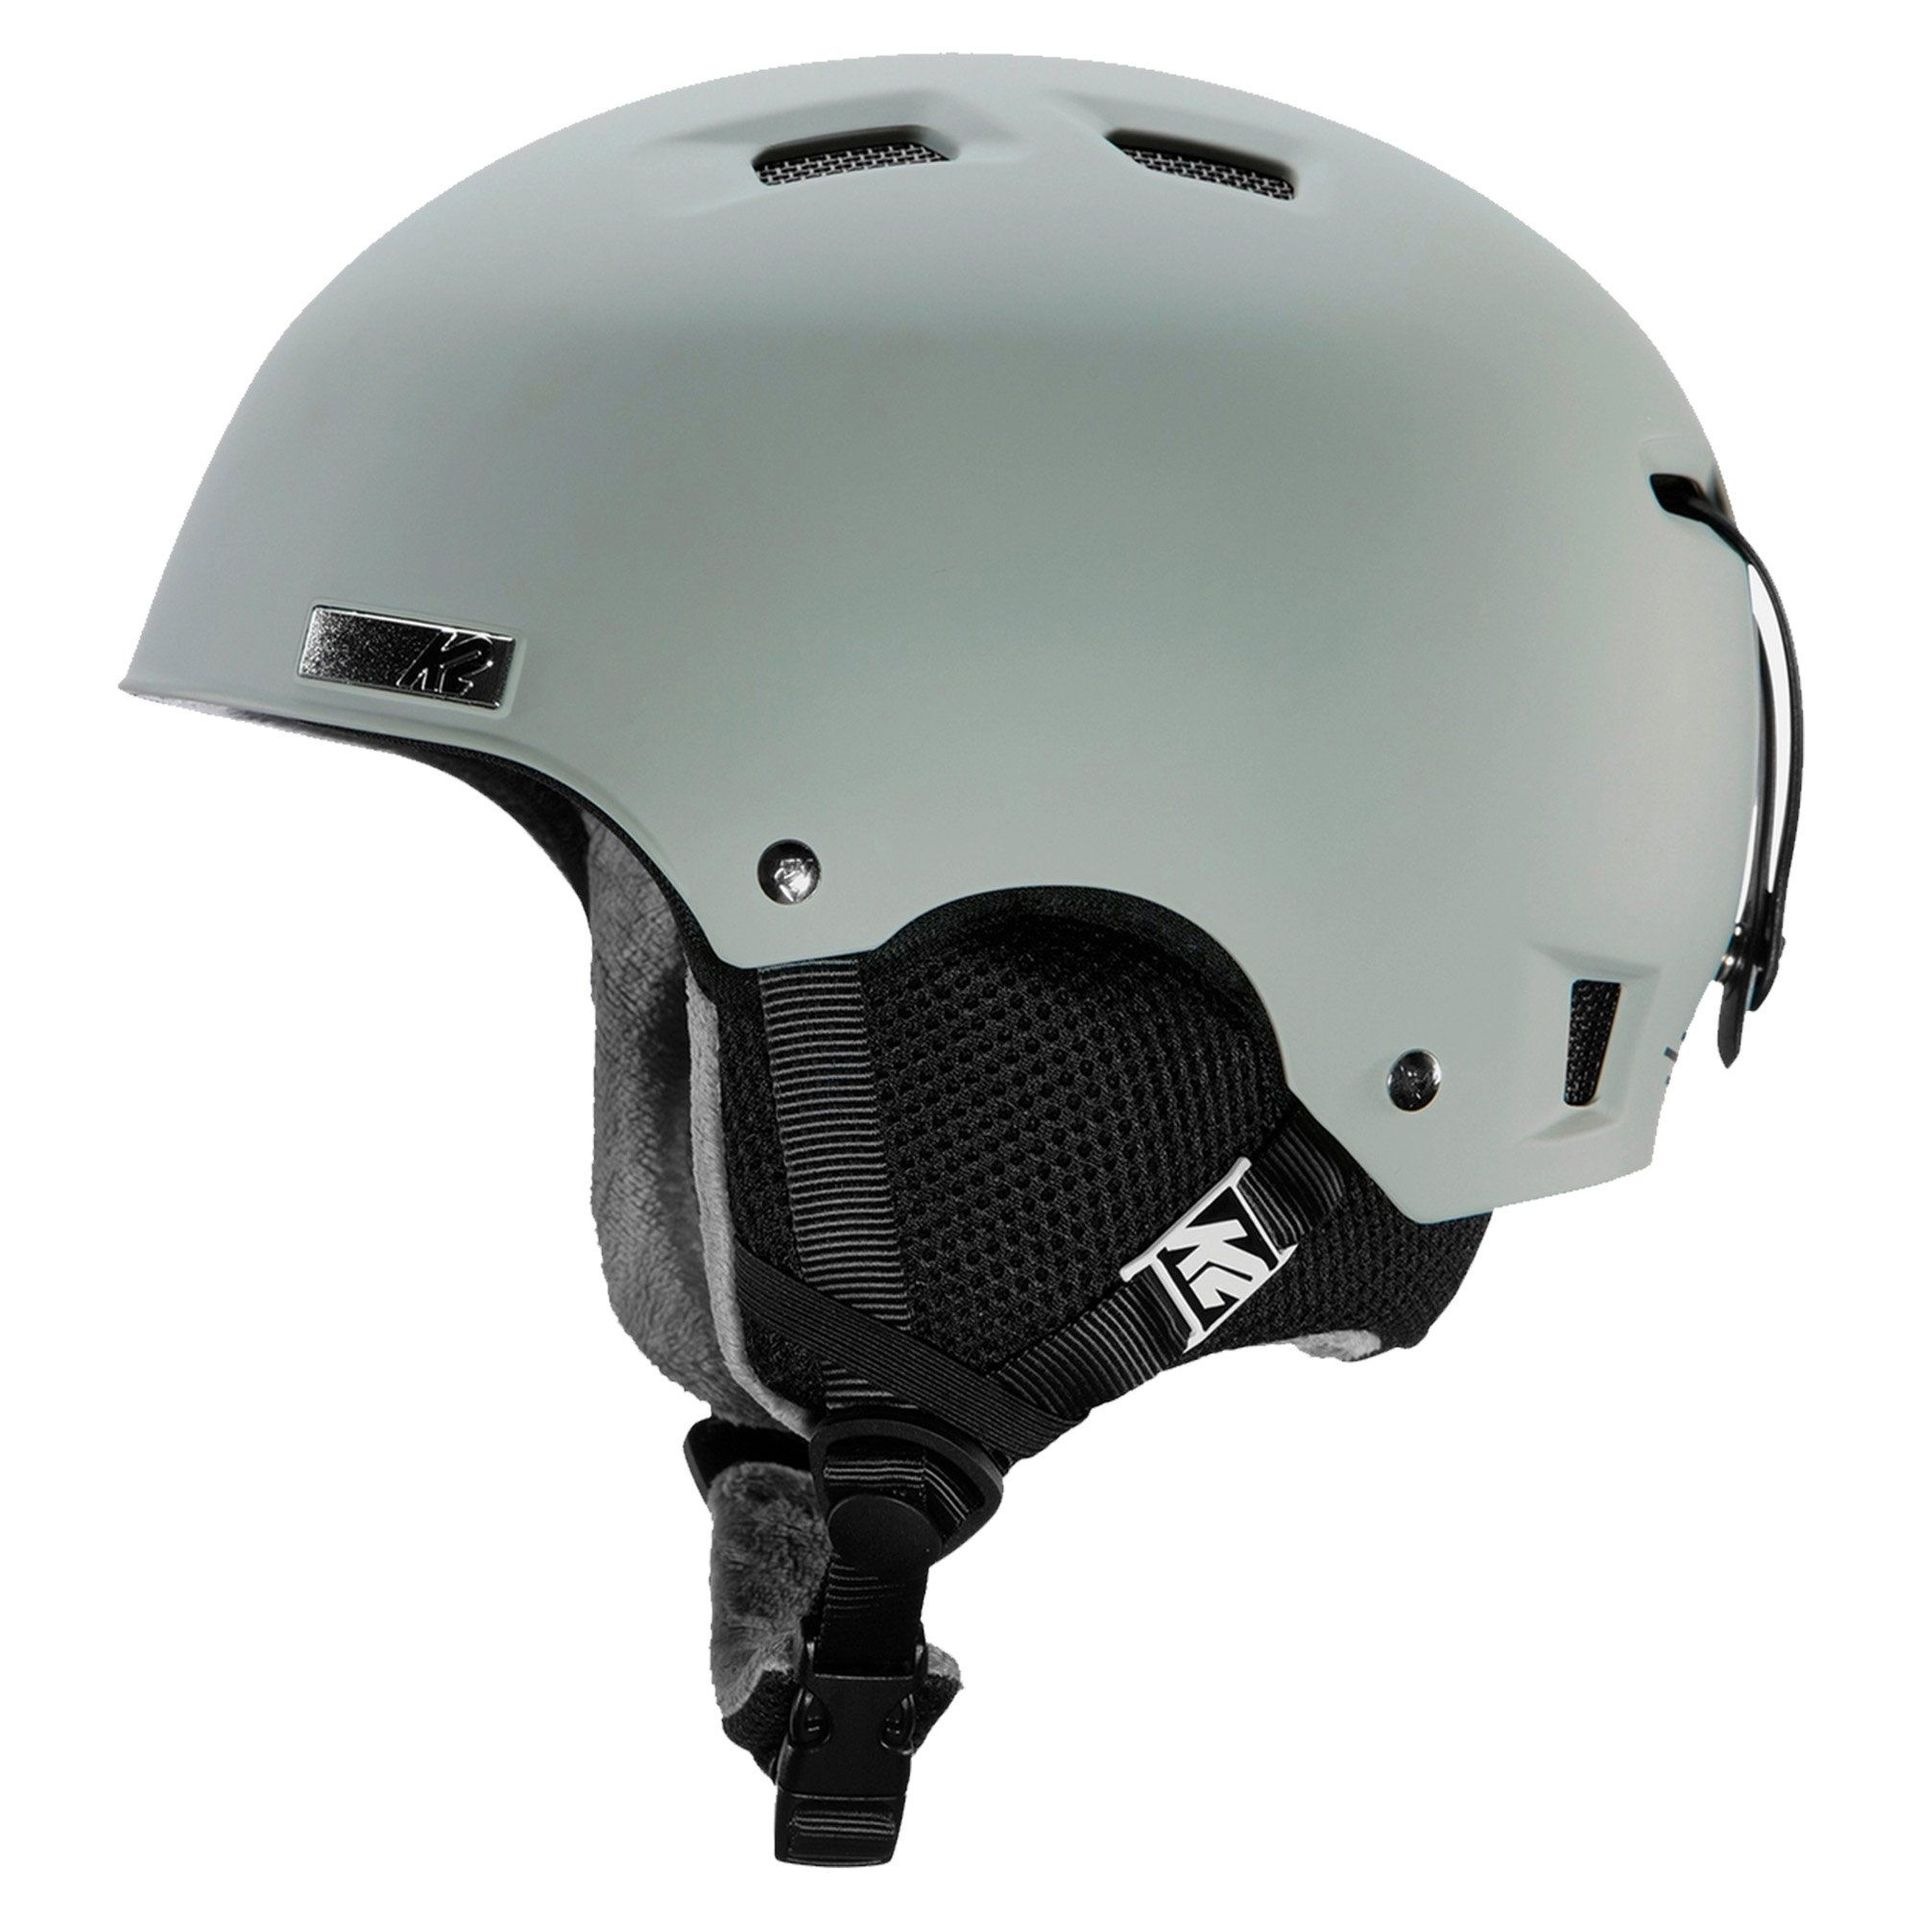 KASK K2 VERDICT 1054005-21 GRAY